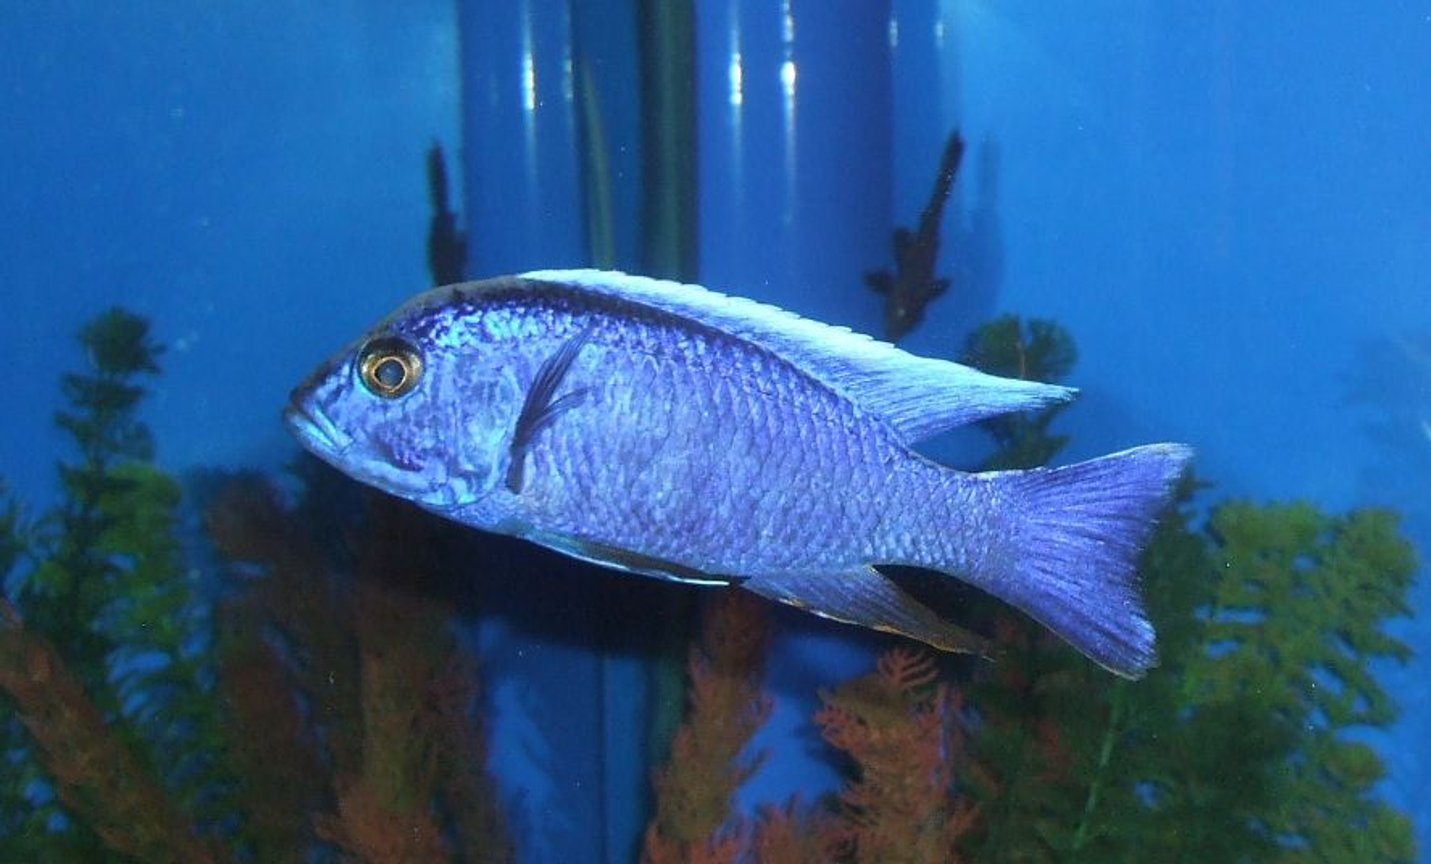 freshwater fish - sciaenochromis ahli - electric blue cichlid stocking in 280 gallons tank - My Electric Blue Cichlid.